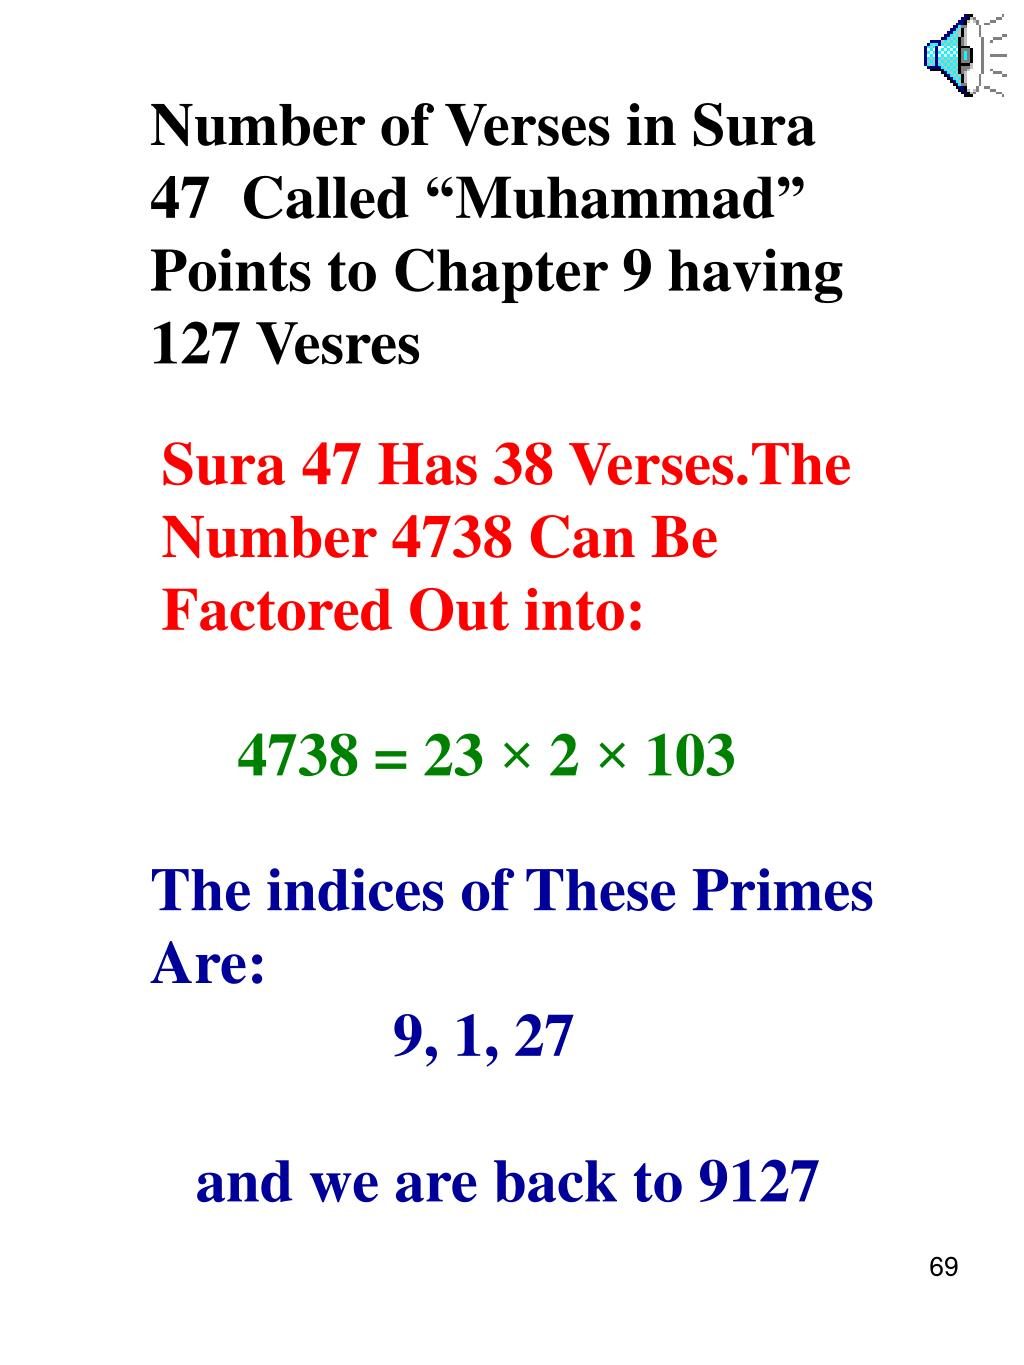 """Number of Verses in Sura 47  Called """"Muhammad"""" Points to Chapter 9 having 127 Vesres"""